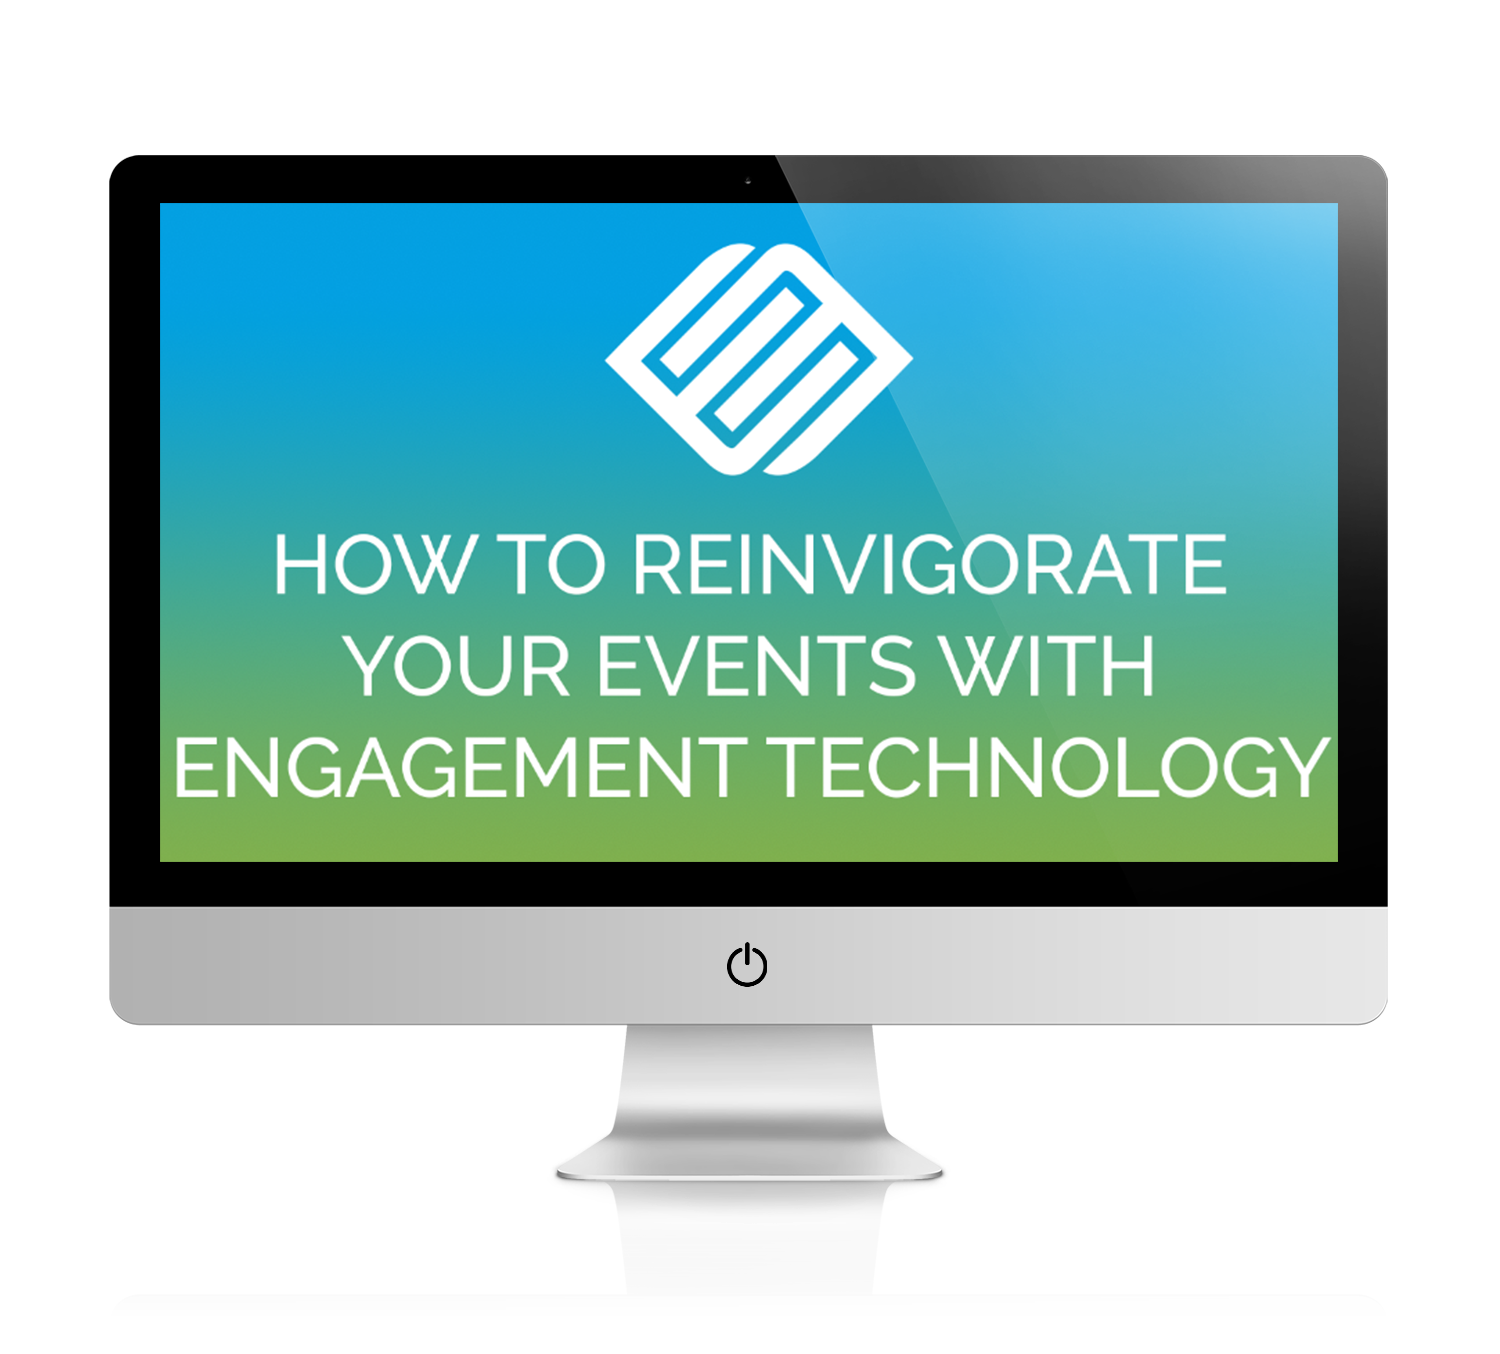 em-webinar-how-to-reinvigorate-your-events-1.png